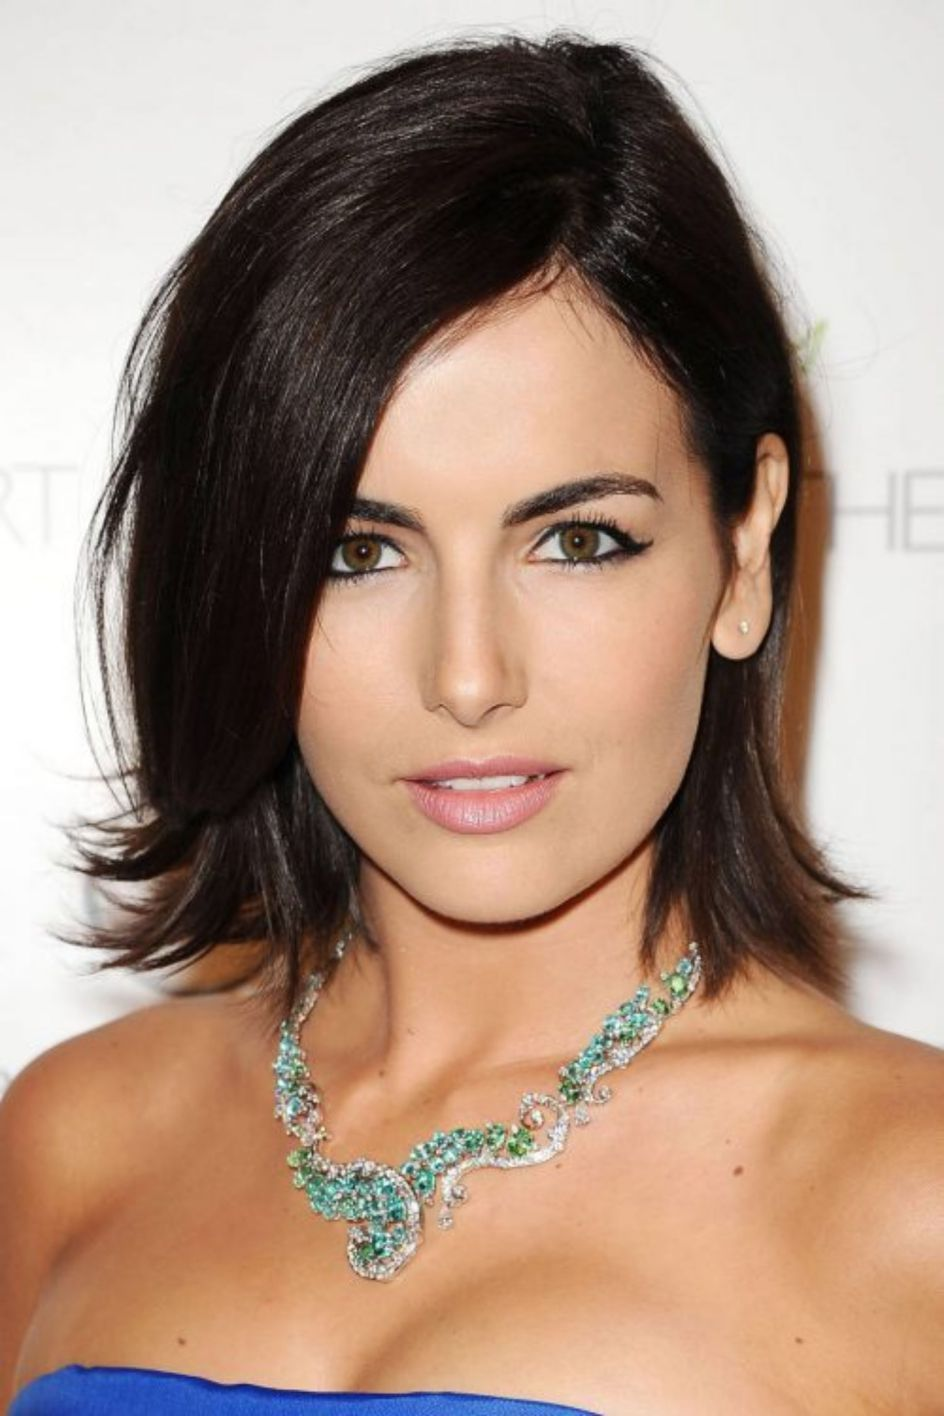 Hacked Camilla Belle naked (15 photos), Tits, Leaked, Boobs, butt 2017